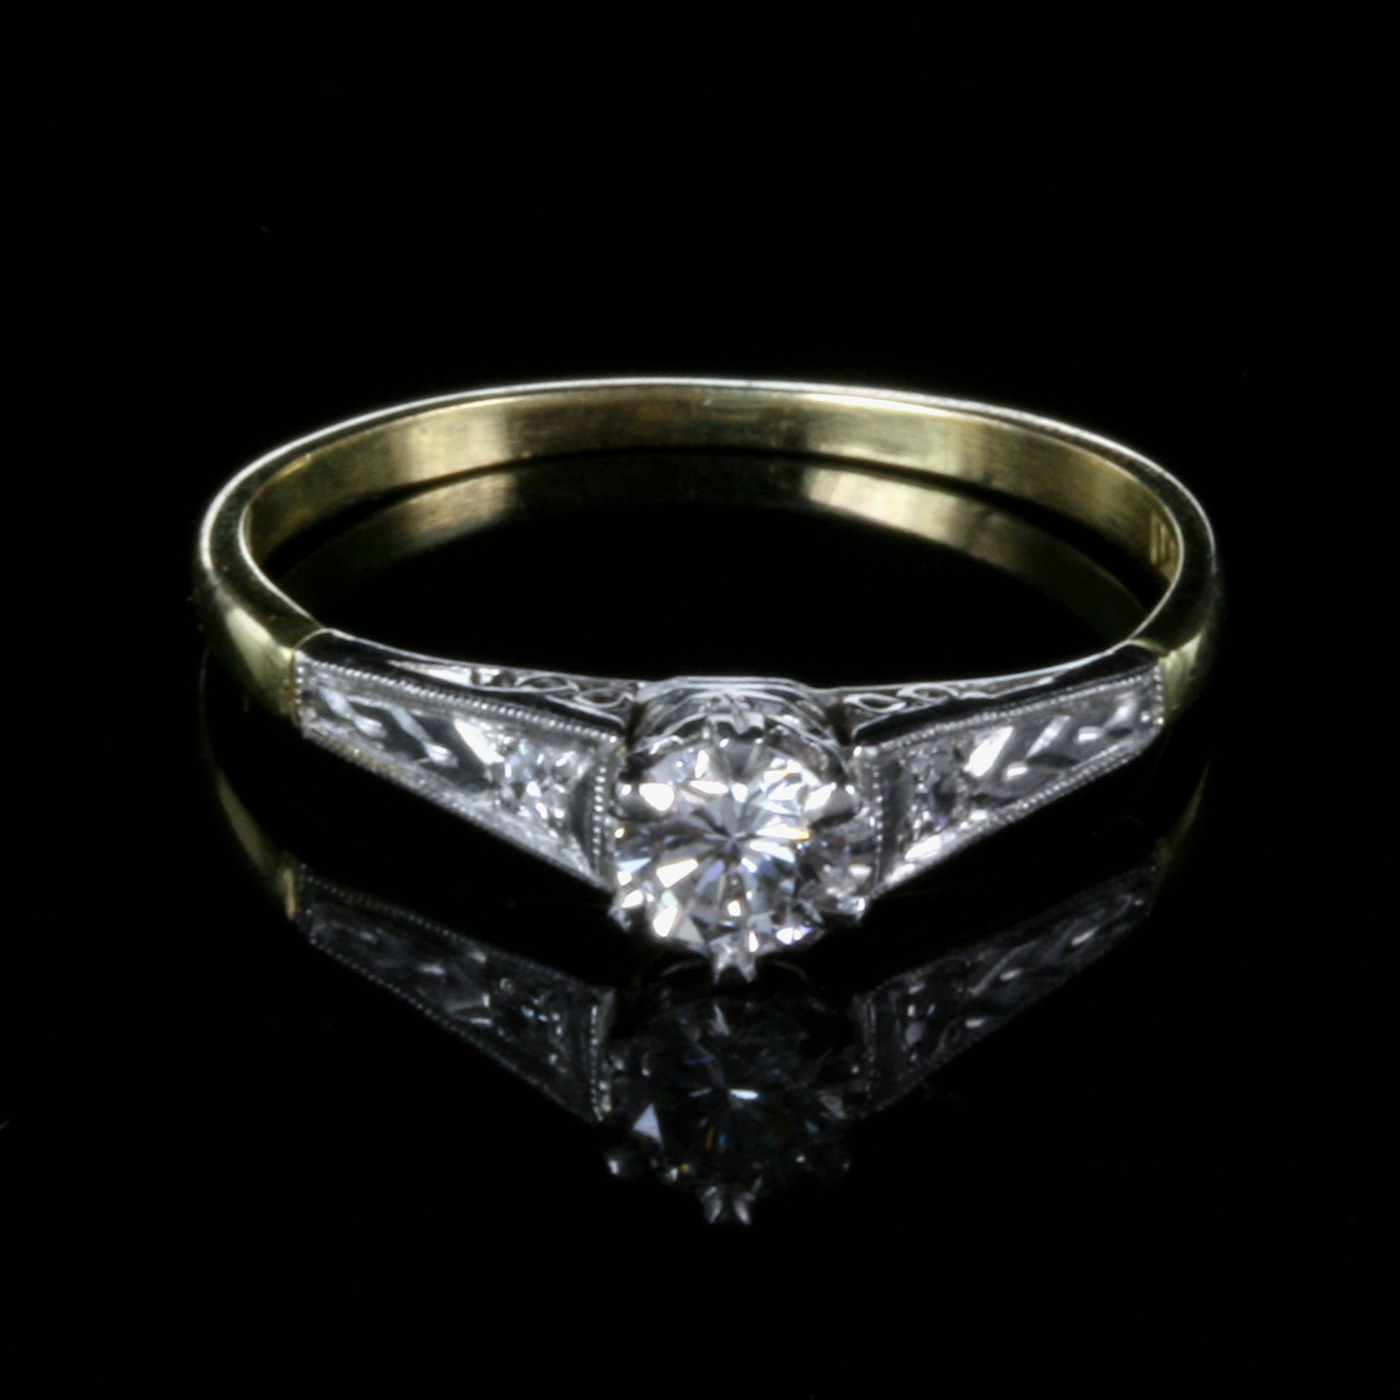 1930's Art Deco Diamond Engagement Ring